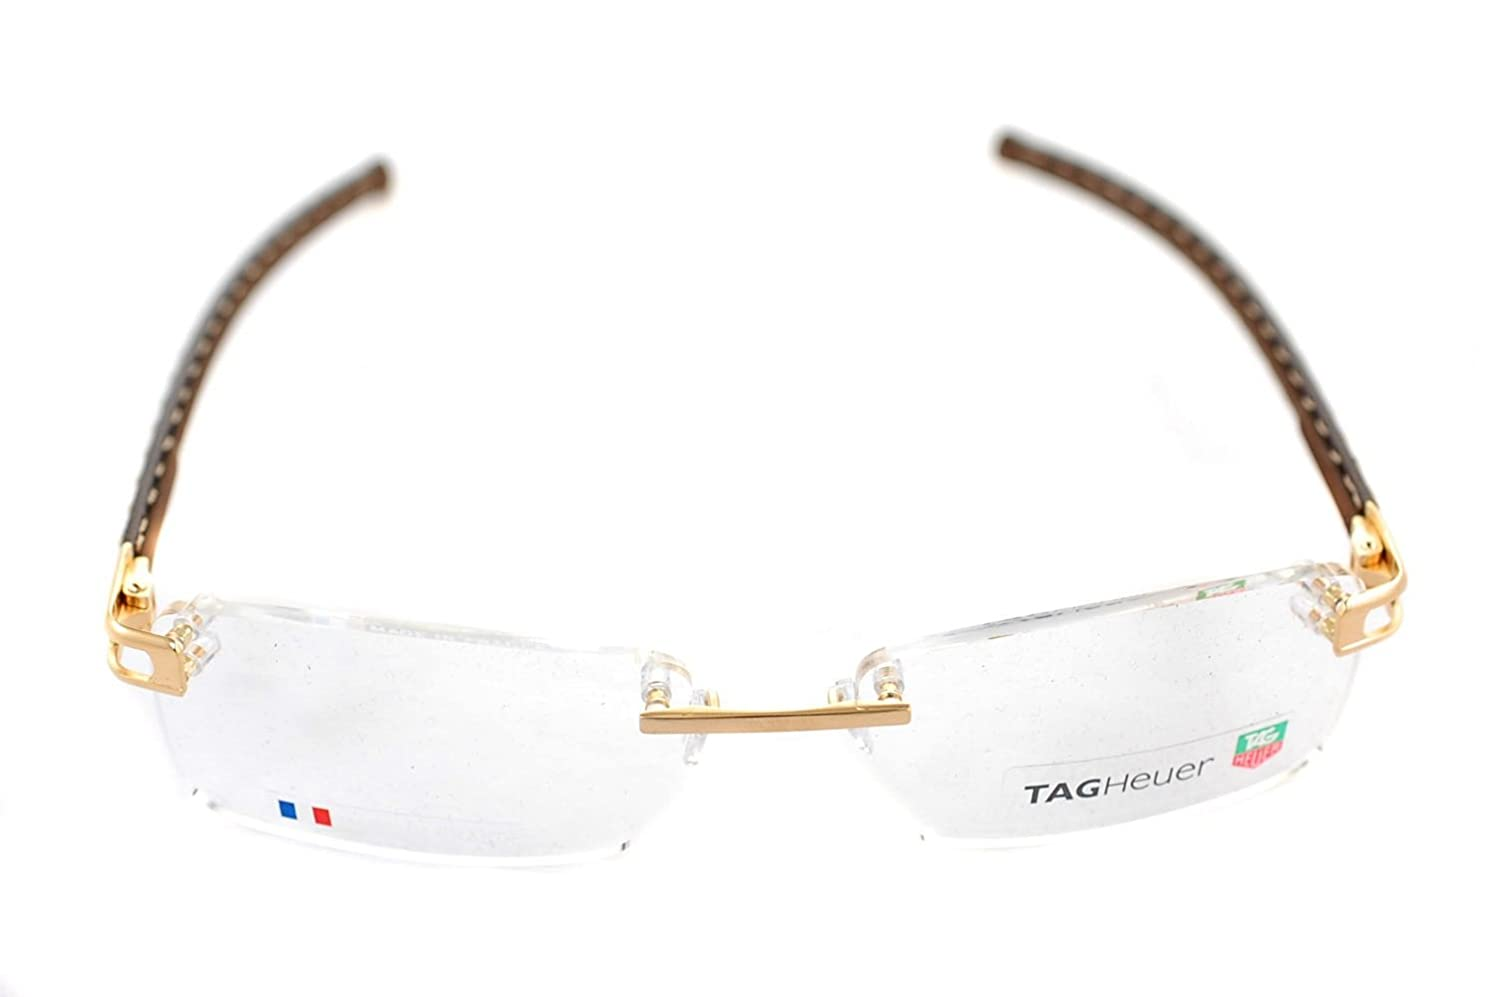 dbff25a2602 Tag Heuer Calfskin TH0153 003 58 mm L-TYPE Handmade Gold Brown Frame  Eyeglasses Rimless  Amazon.co.uk  Clothing